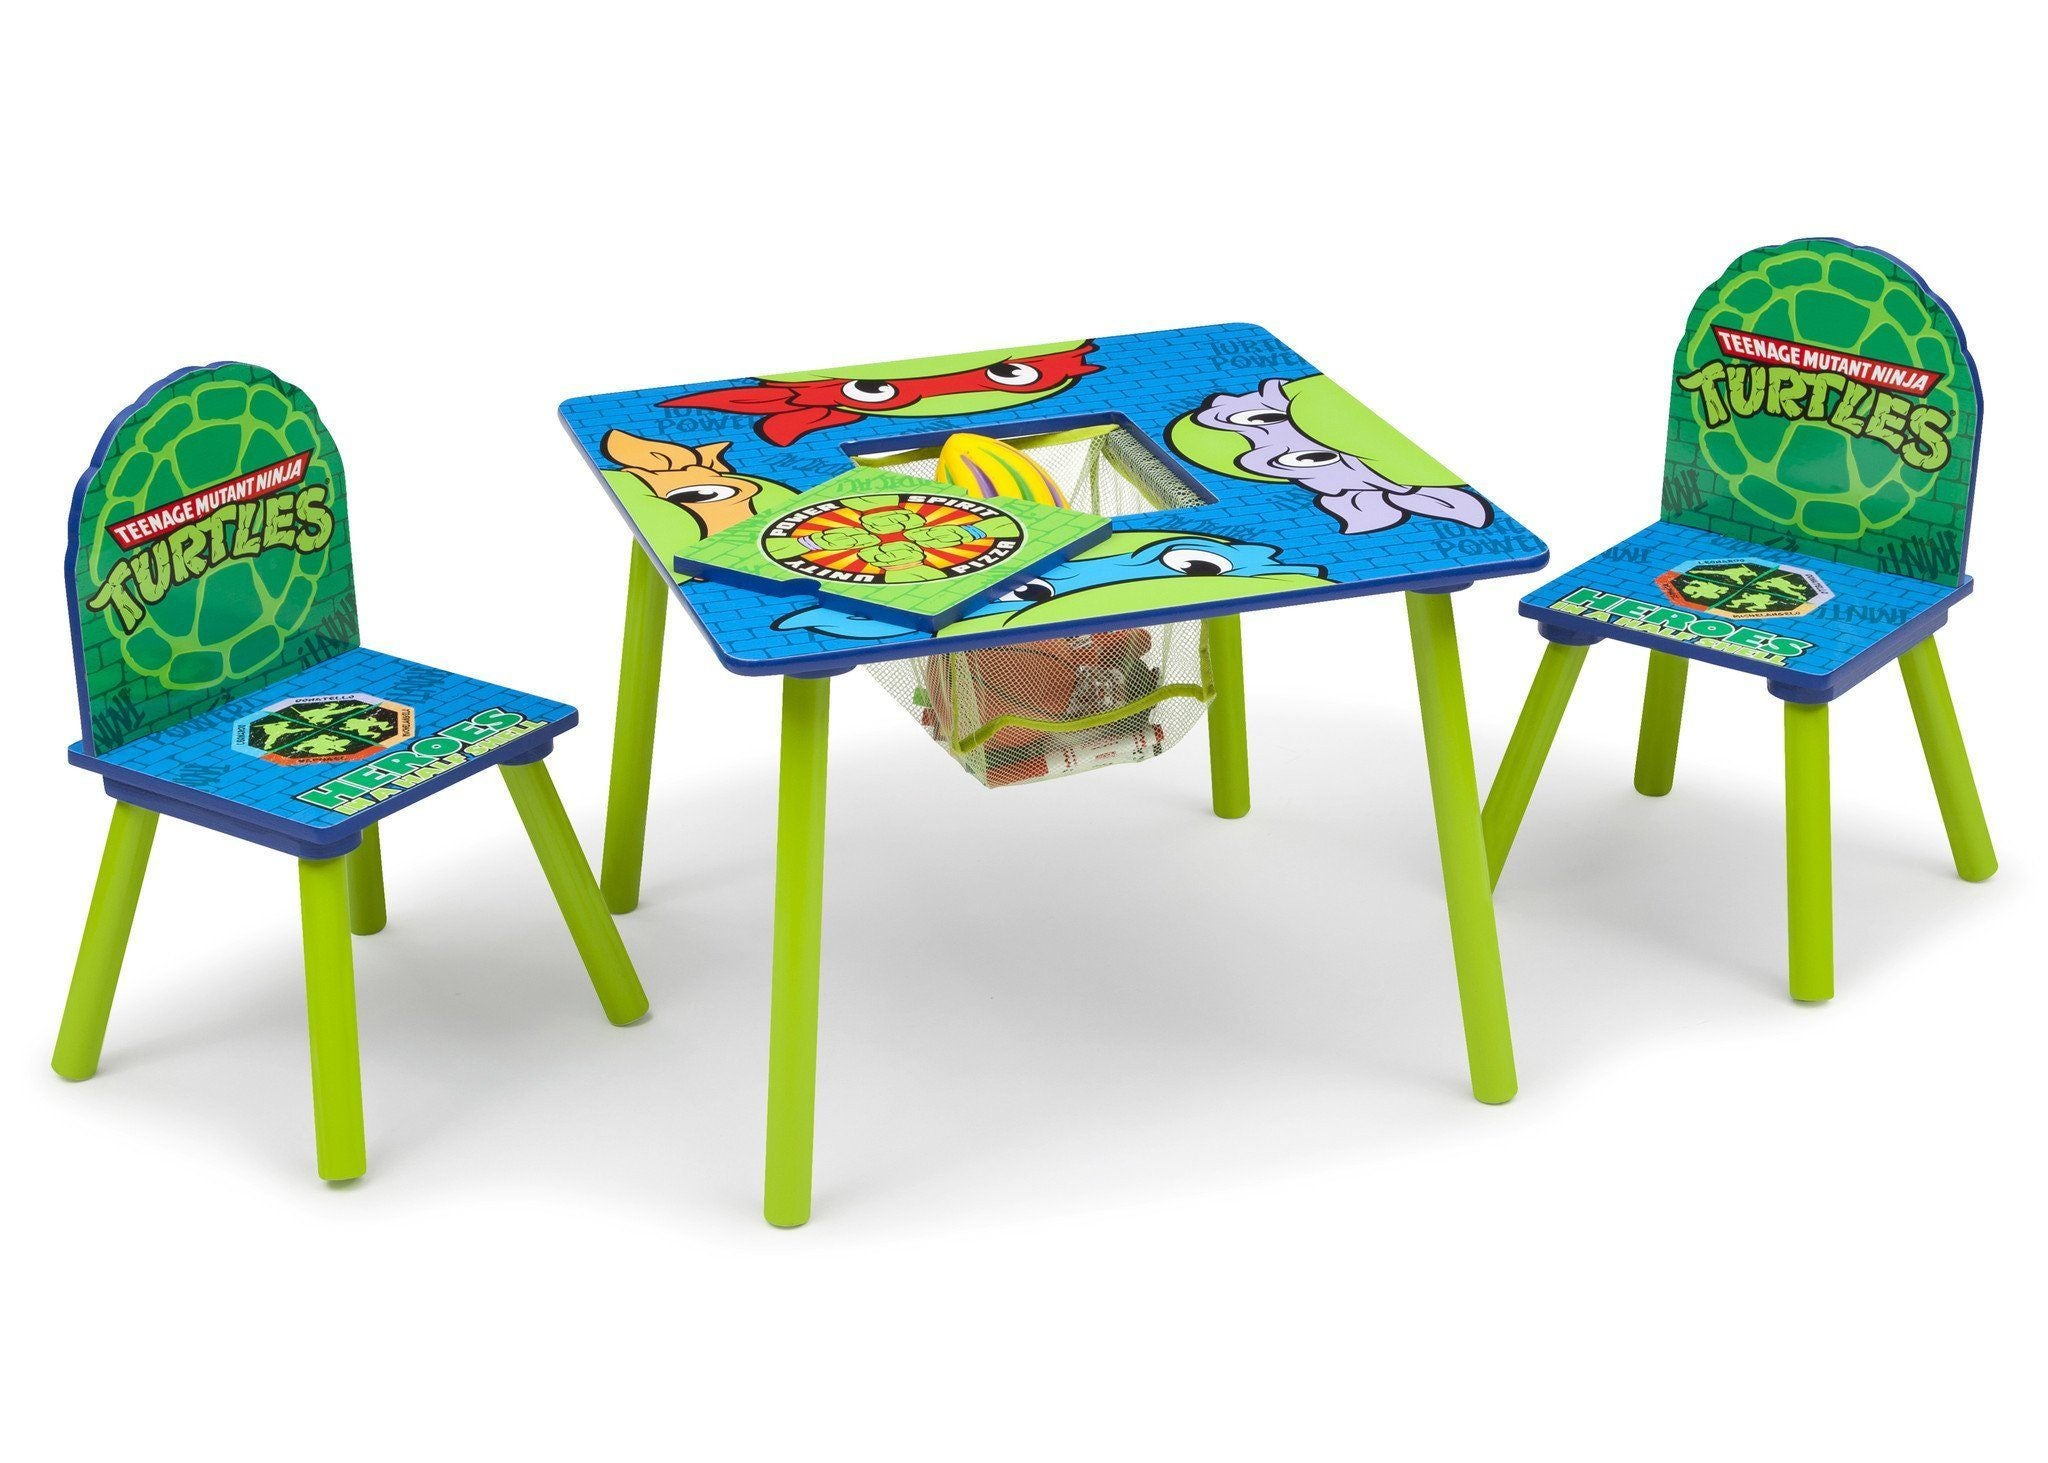 Delta Children Teenage Mutant Ninja Turtles Table & Chair Set w/ Storage, Right Side View with Storage 2 a1a Ninja Turtles (1117)